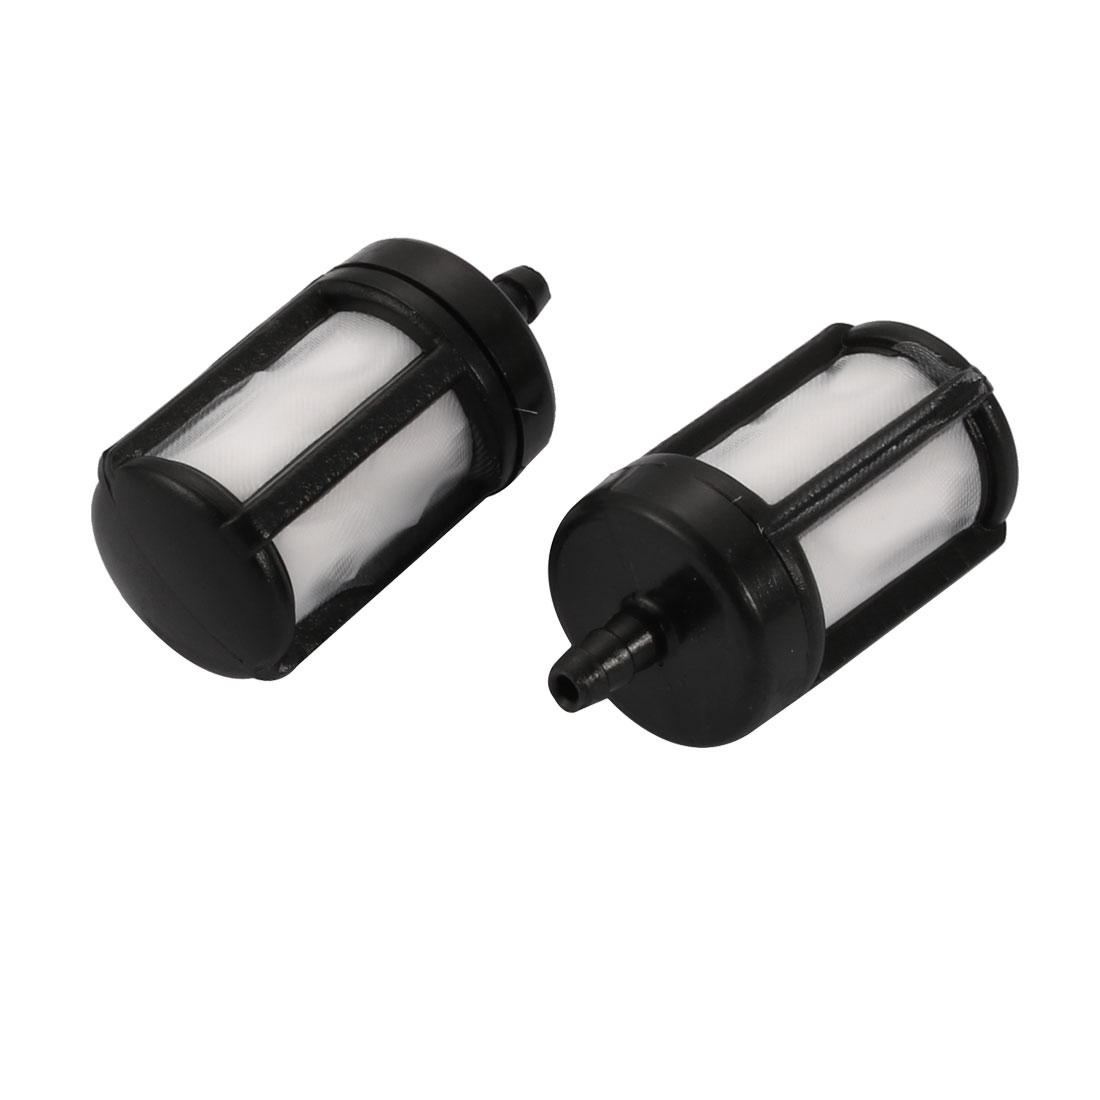 2Pcs Fuel Filter Replacement For 2013C Weedeater Chainsaw Trimmer Edger Blower